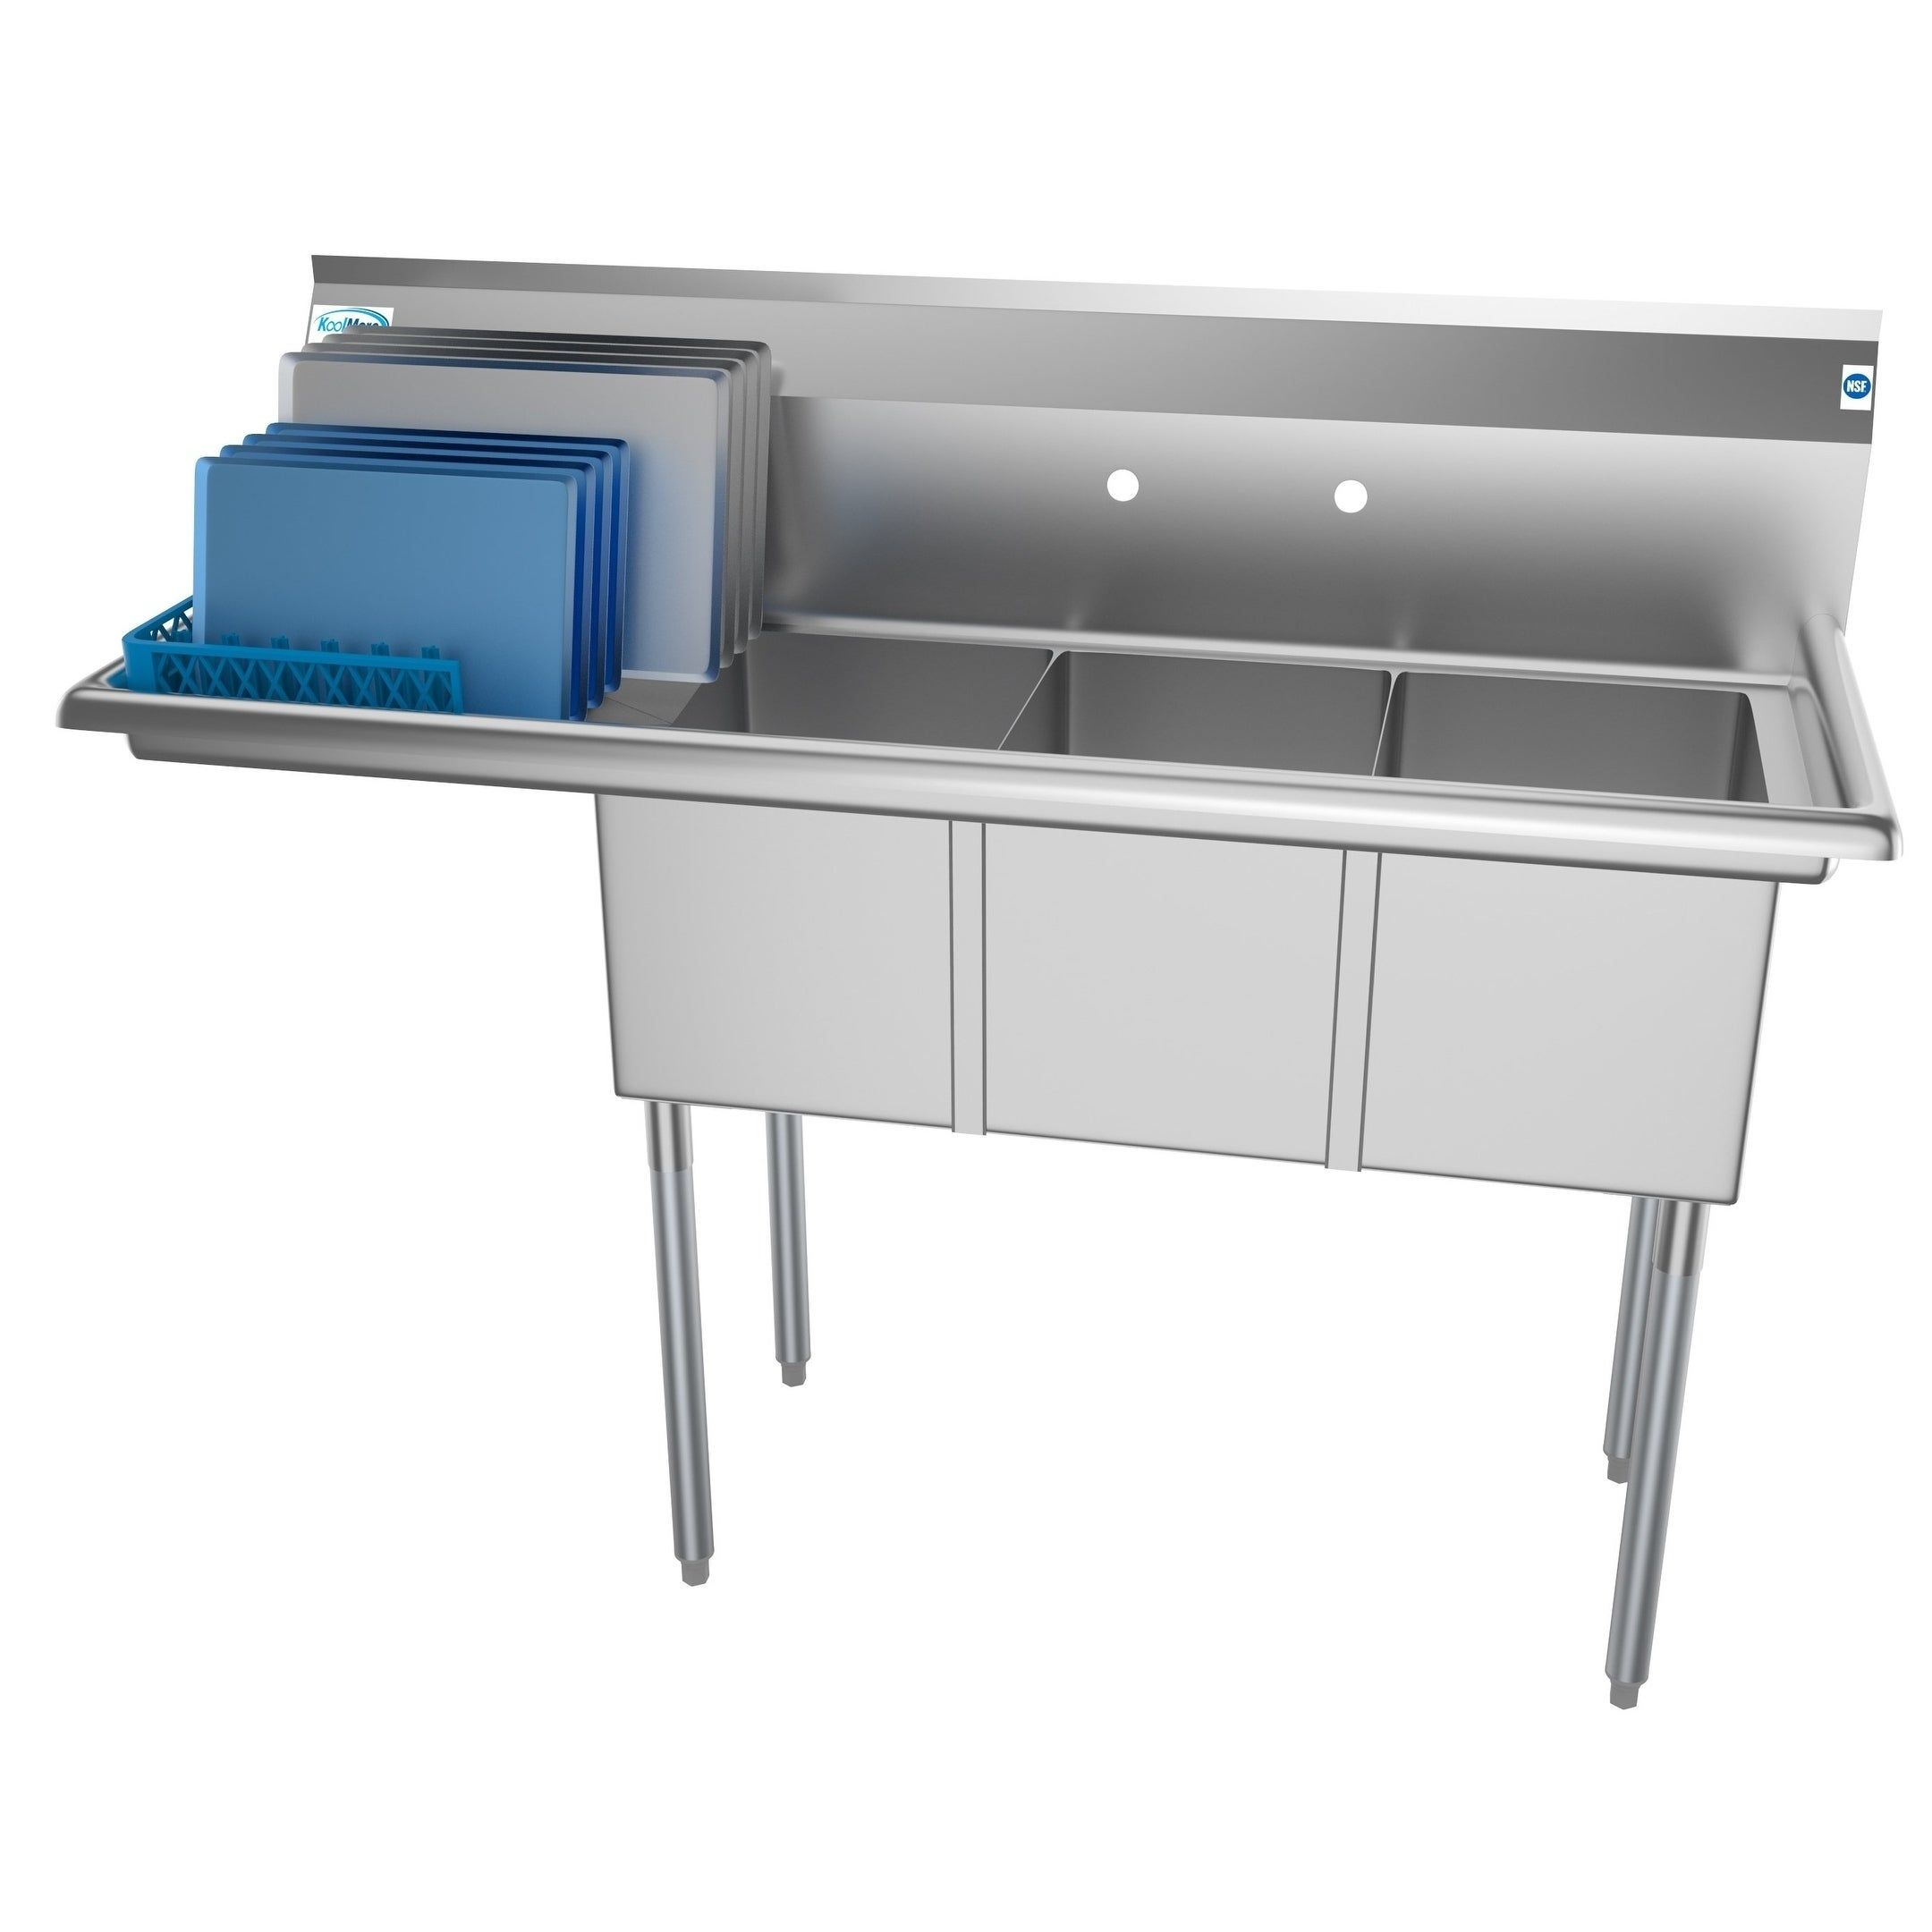 KoolMore 55Inch Three Compartment Stainless Steel